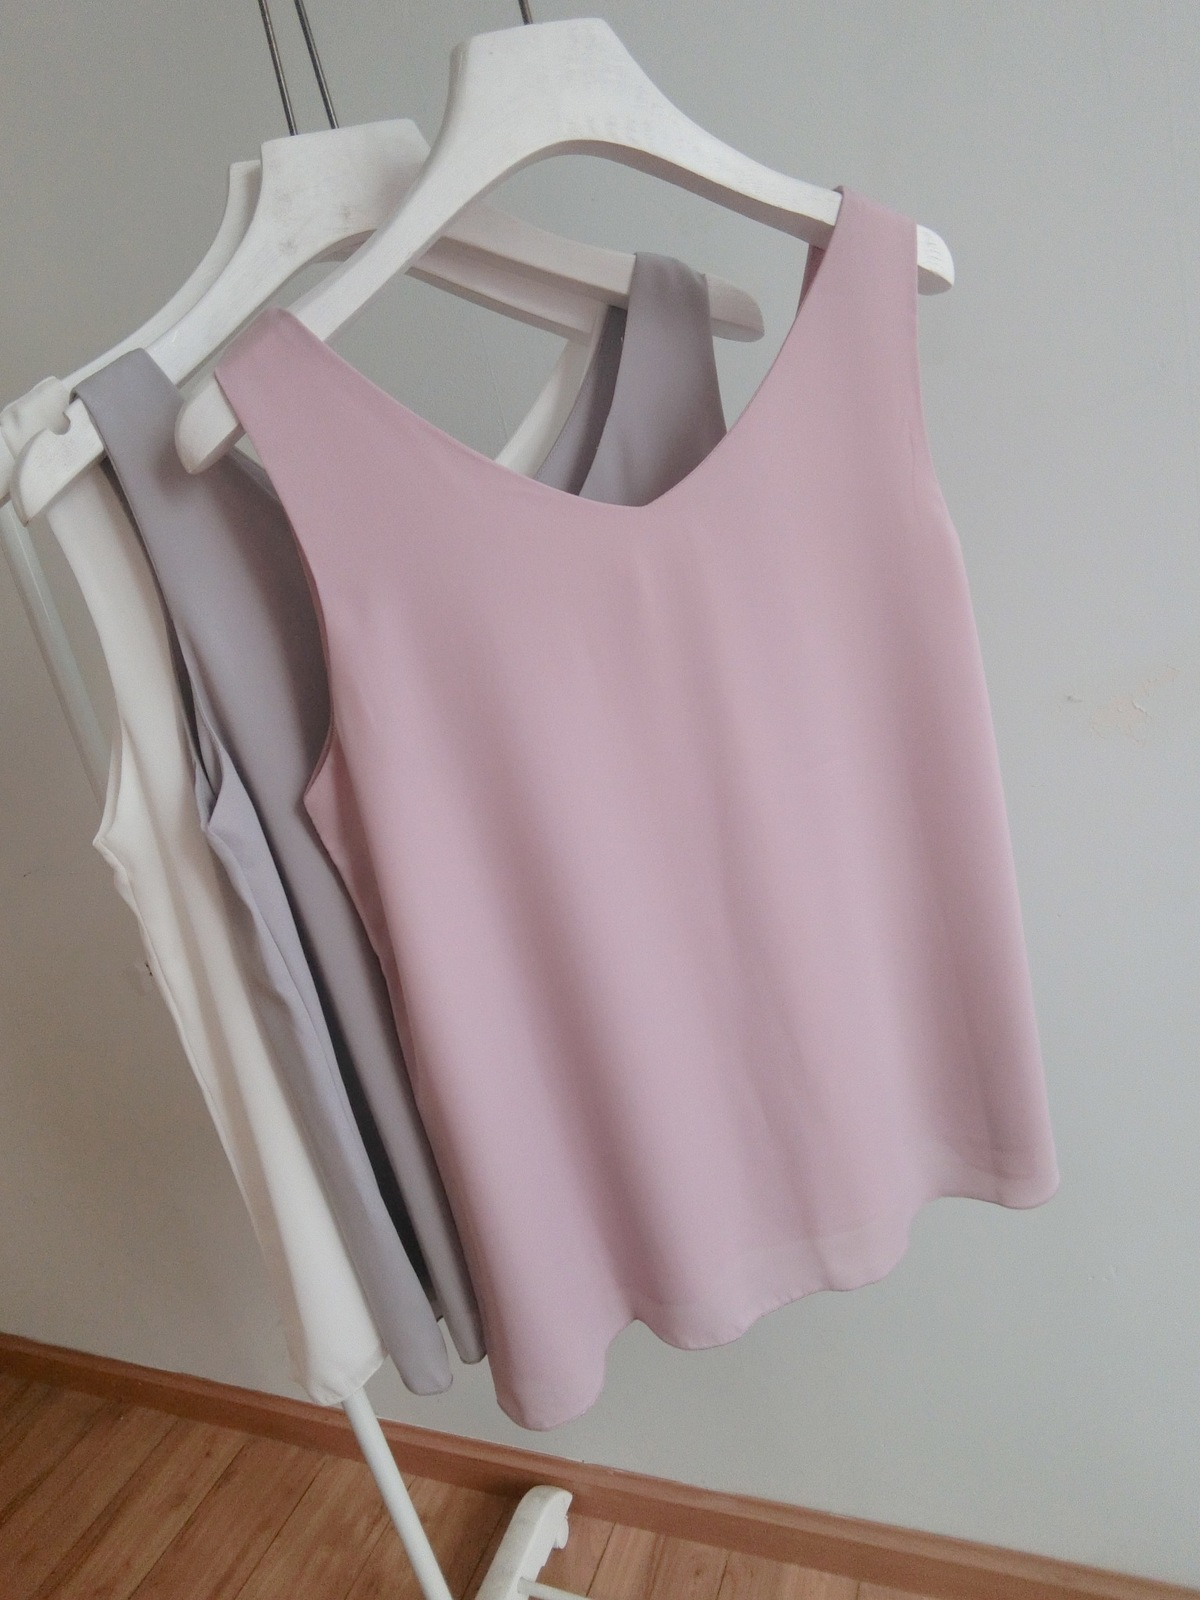 Women's V Neck Sleeveless Chiffon Tops Summer Chiffon Tops Blouse Pink Tank Tops